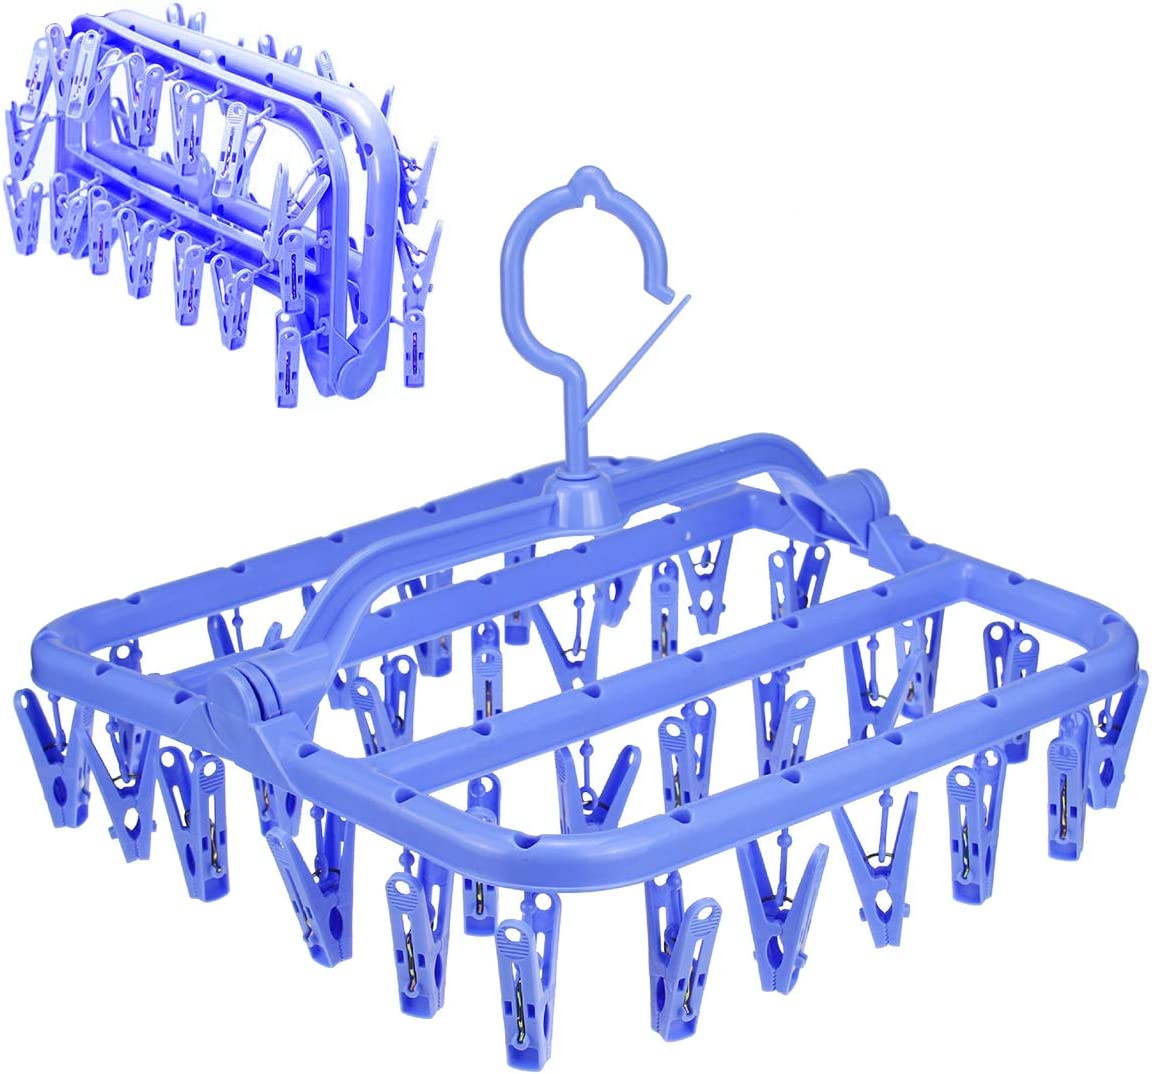 HAPY SHOP Foldable Laundry Hanger Drying Rack,Plastic Laundry Clip with 32 Clips,Clip Hanger Drip Drying Hanger Underwear Hanger with Clips for Socks, Bras, Lingerie, Clothes,Towel,Scarf,Blue